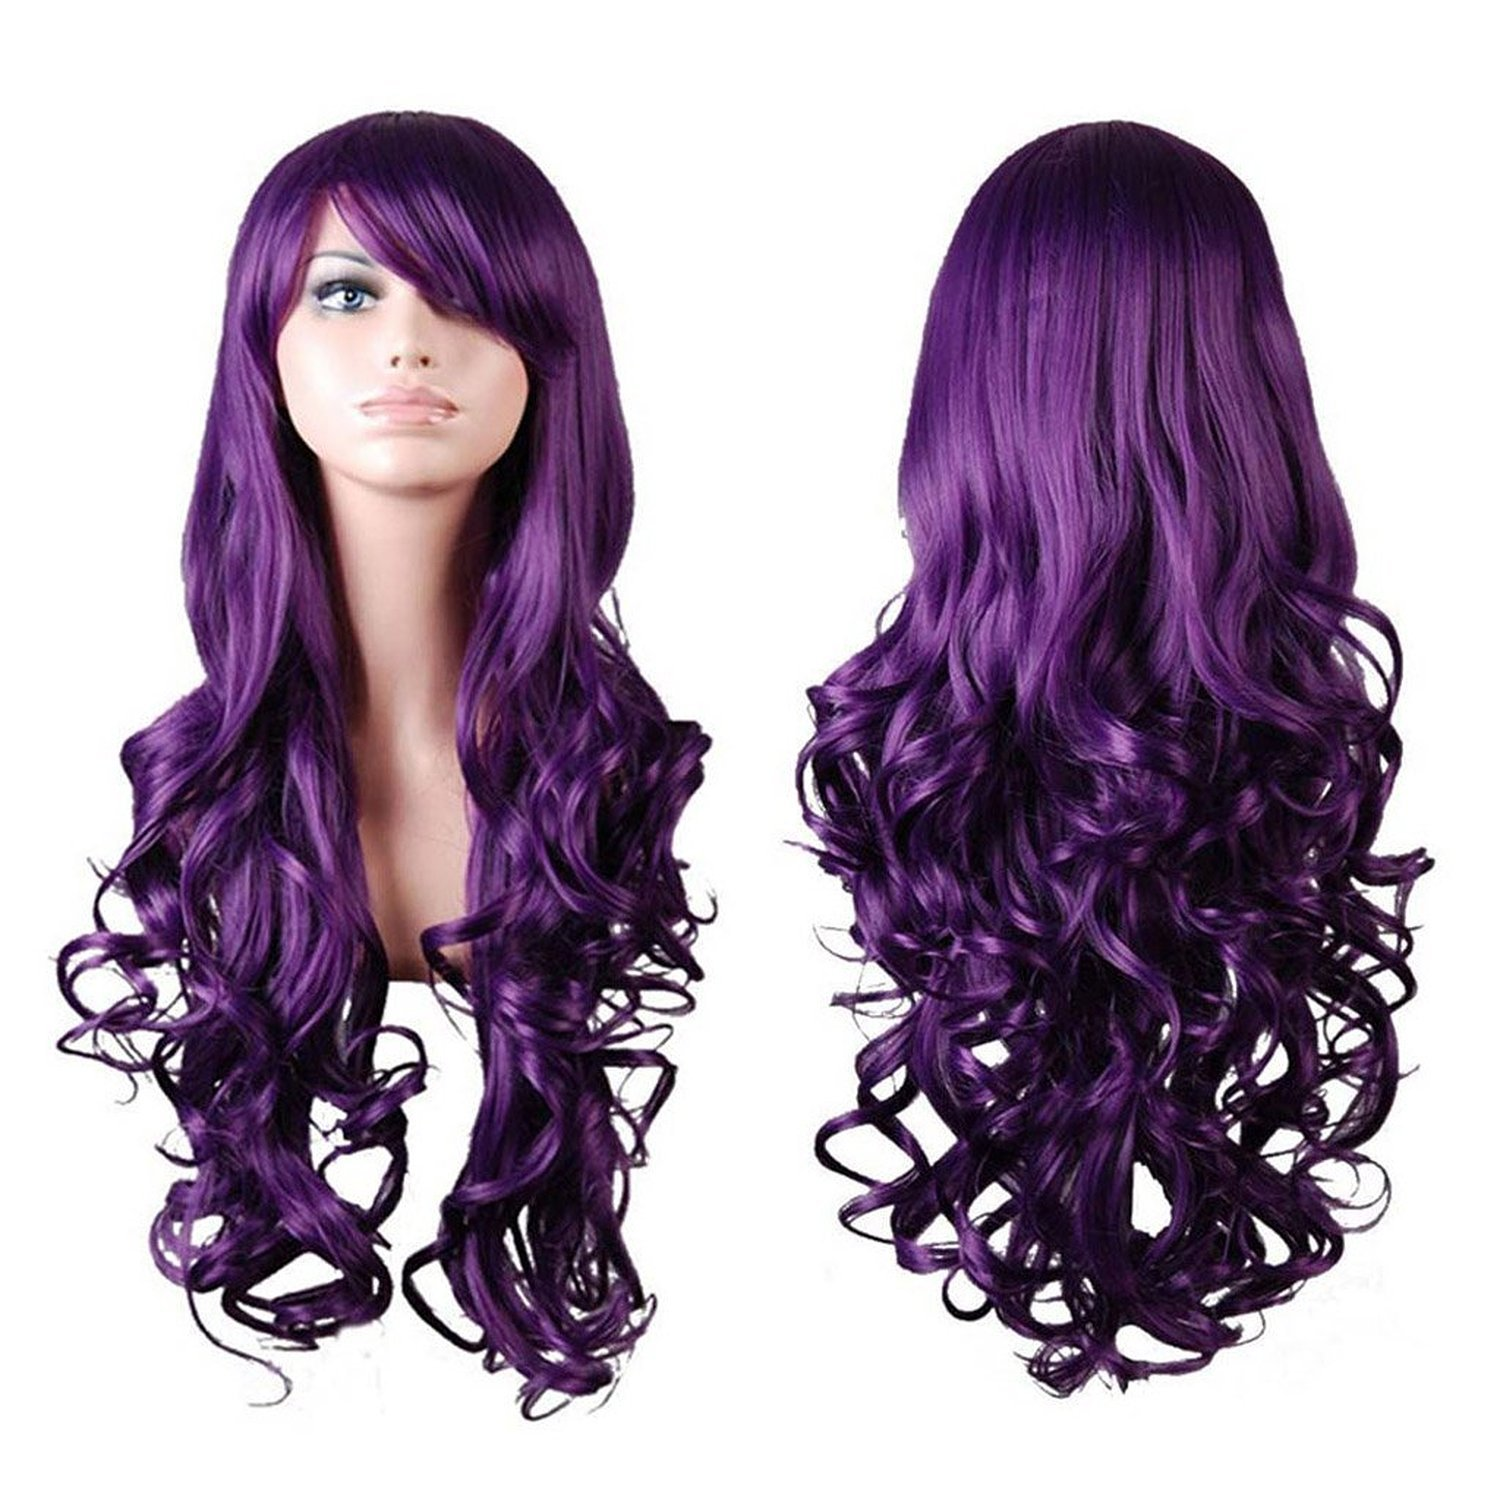 Dark Purple Curly Wig